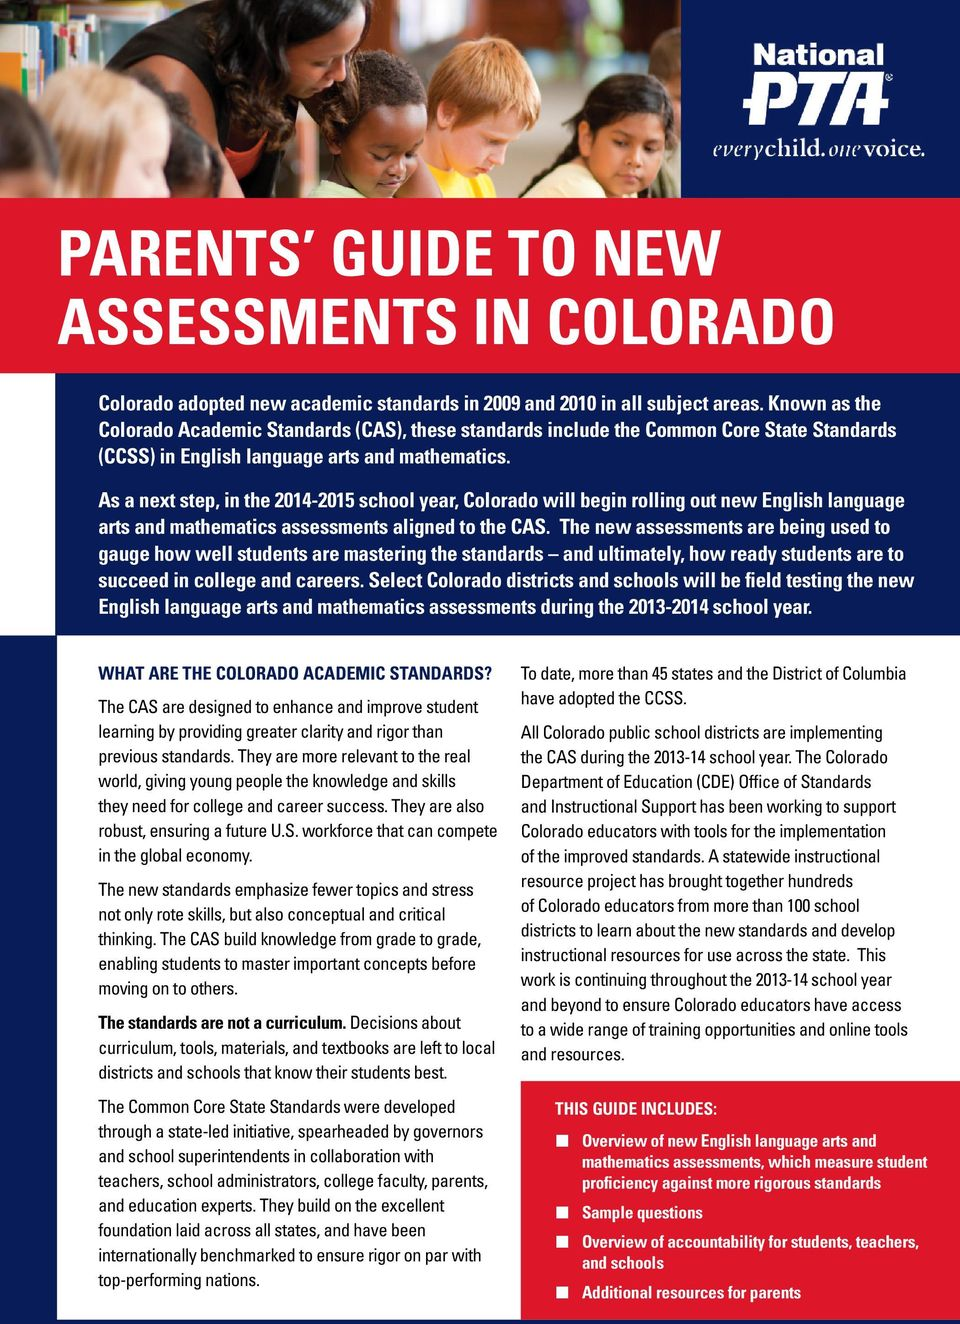 As a next step, in the 2014-2015 school year, Colorado will begin rolling out new English language arts and mathematics assessments aligned to the CAS.